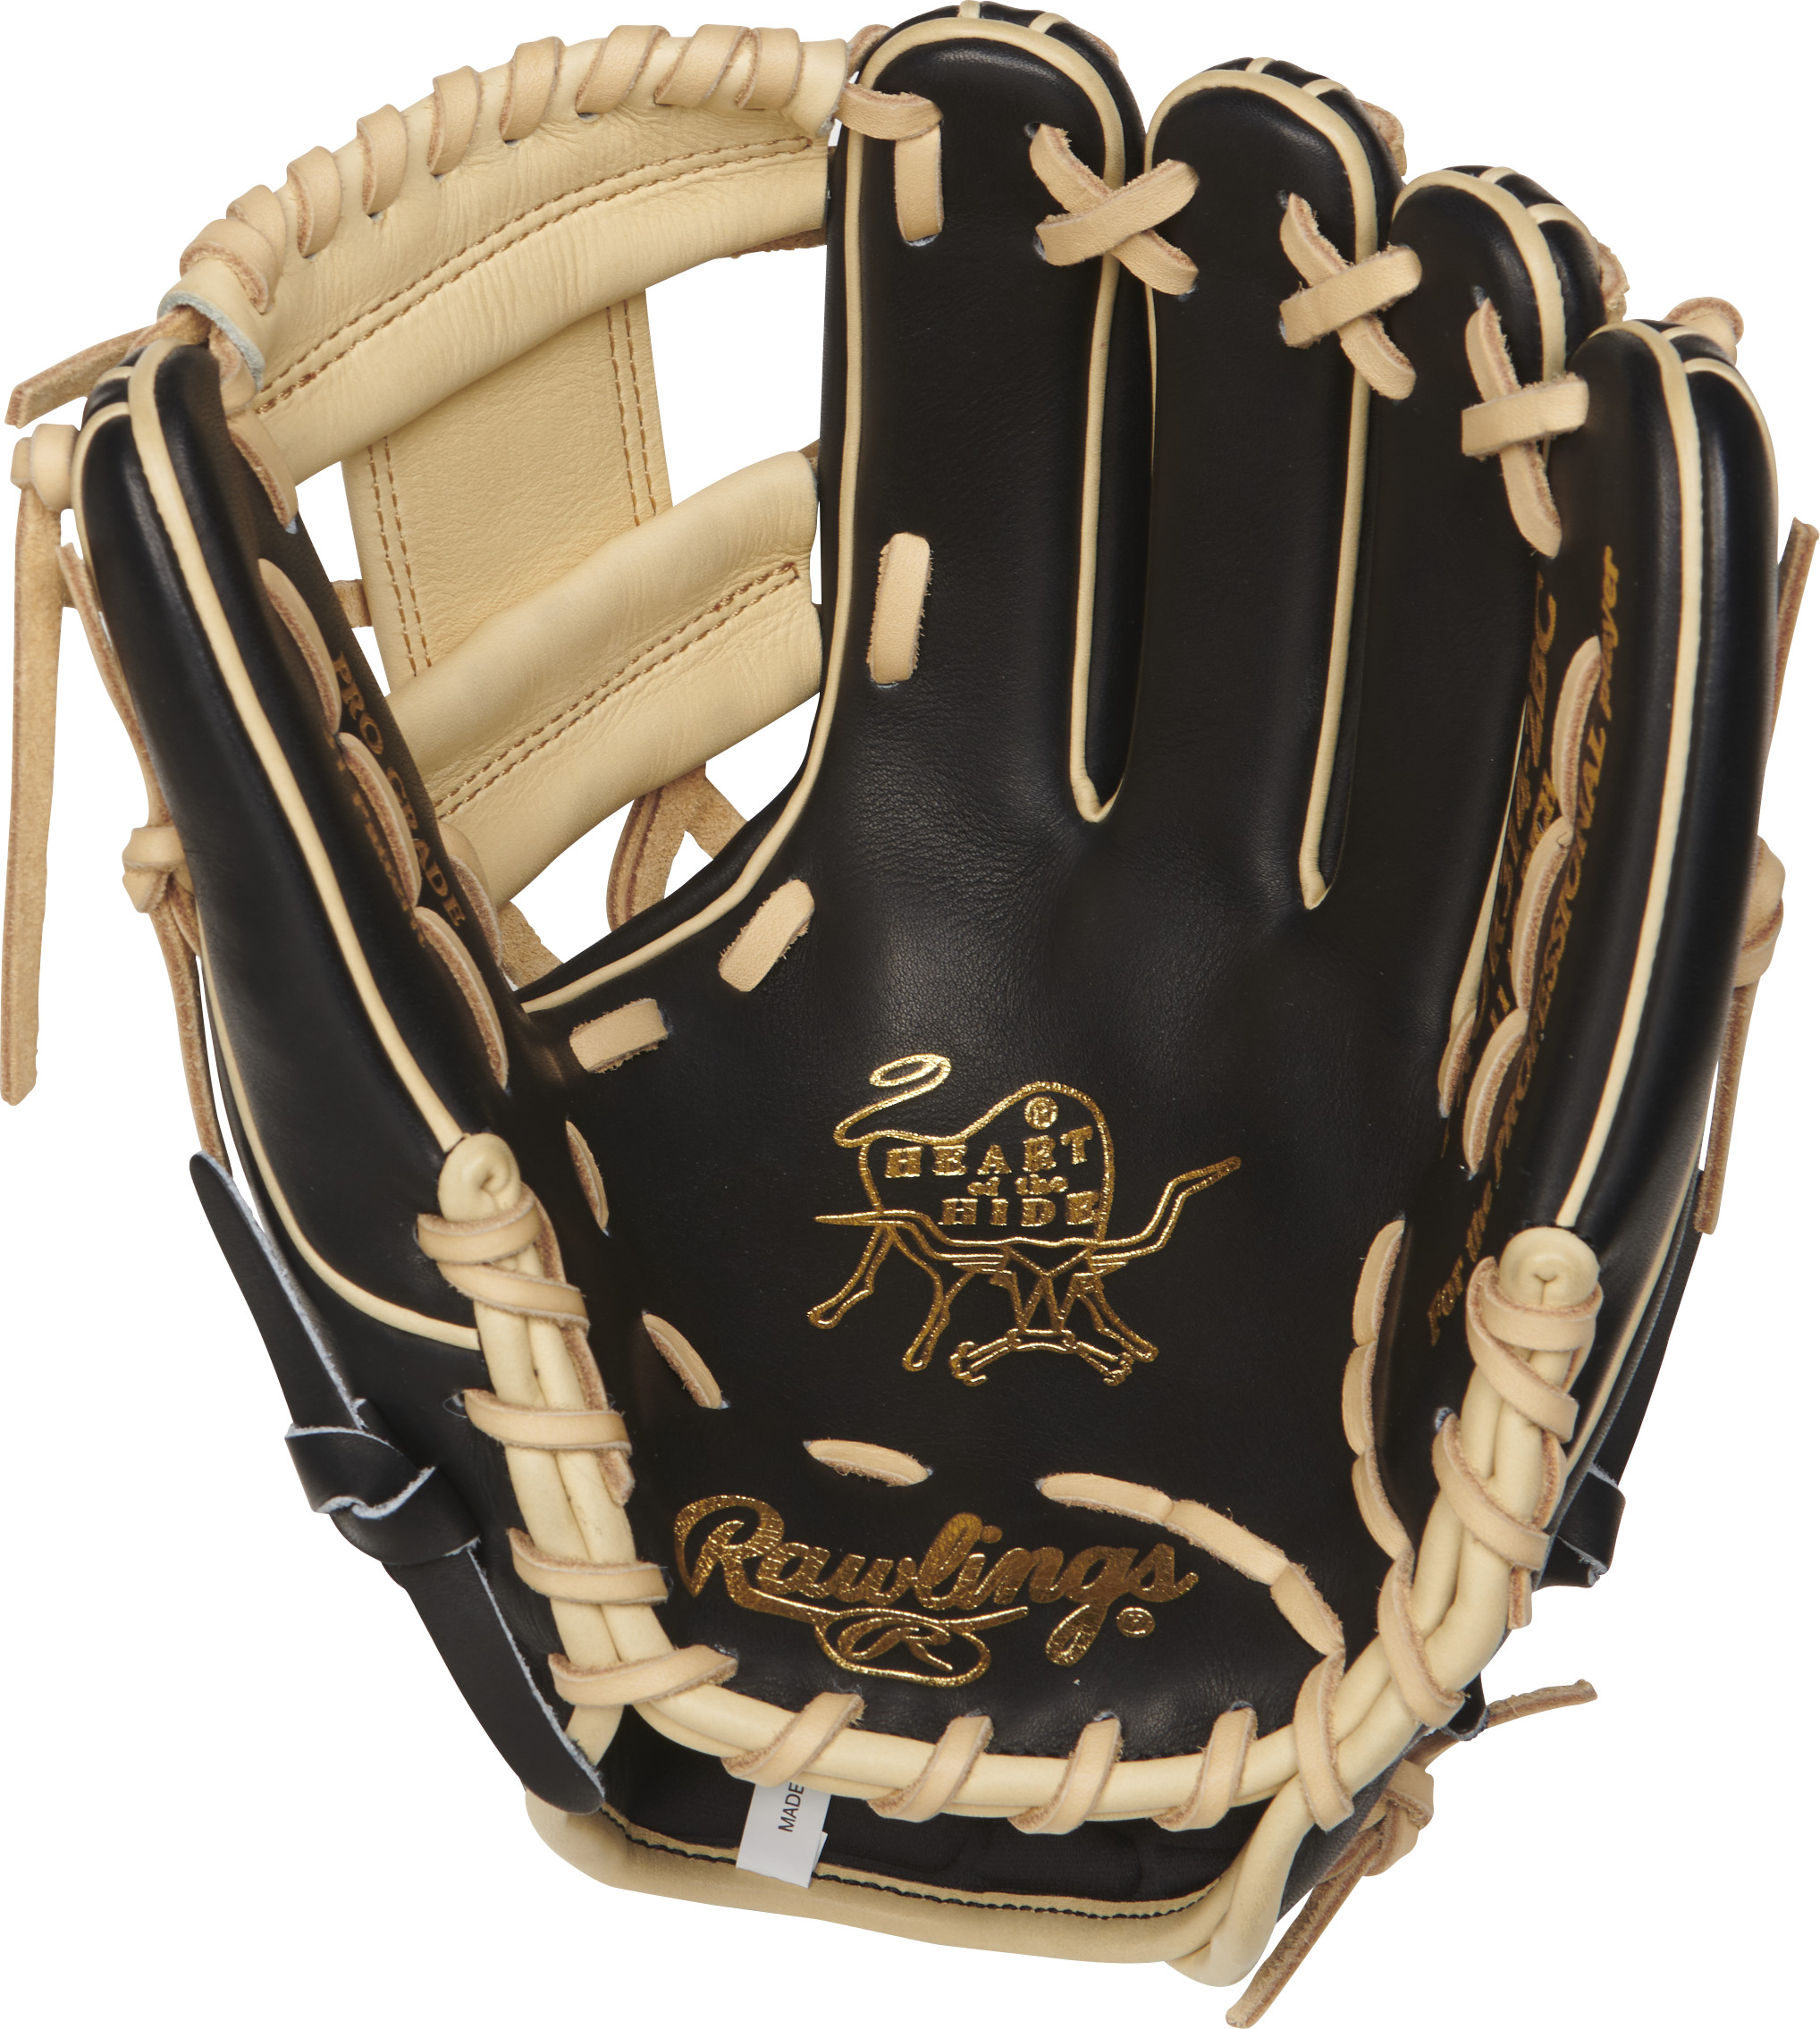 http://www.bestbatdeals.com/images/gloves/rawlings/PROR314-2BC-1.jpg